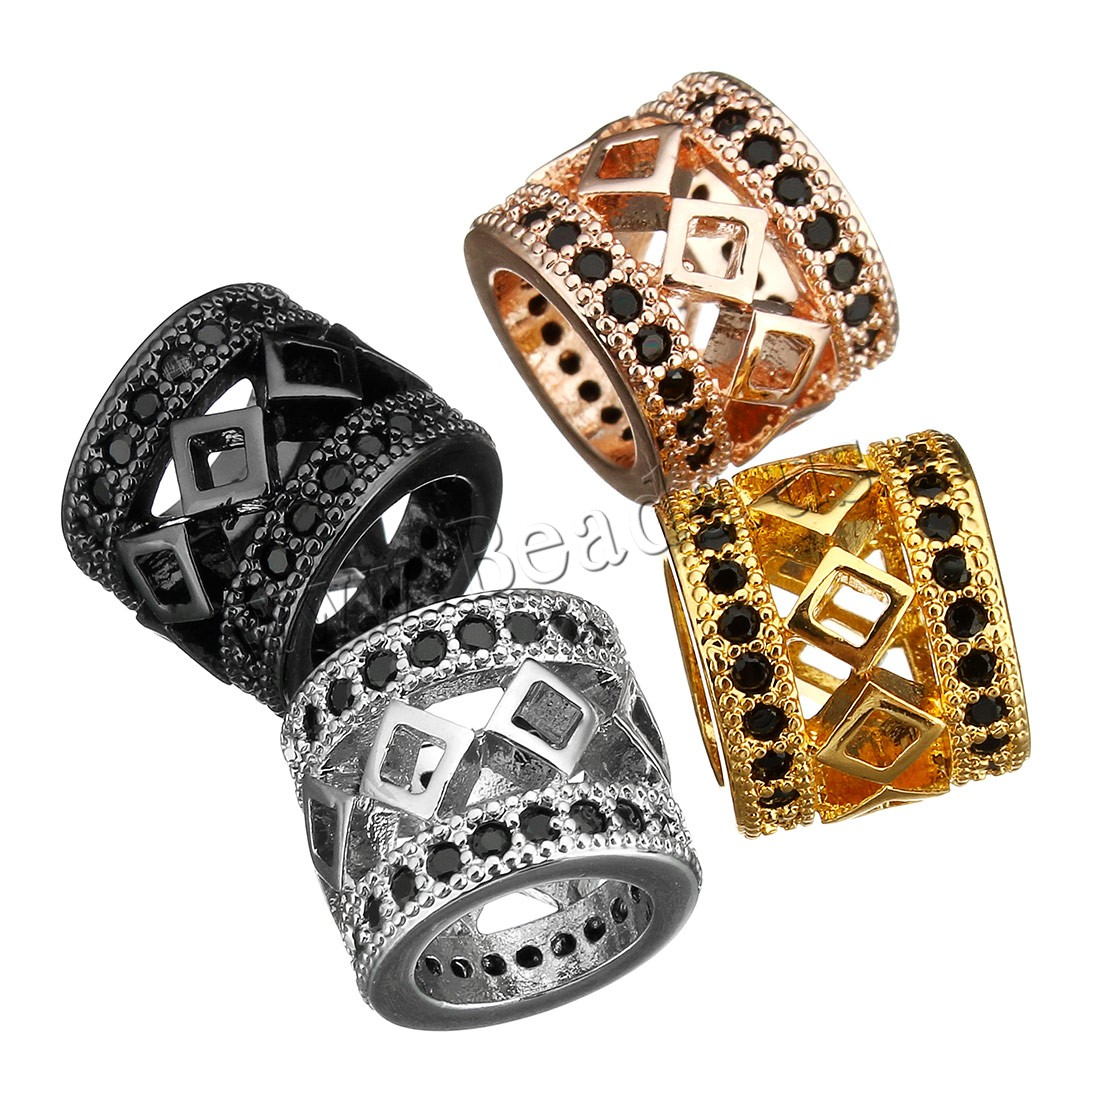 Buy Cubic Zirconia Micro Pave Brass Beads Column plated micro pave cubic zirconia & hollow colors choice 9x11x11mm Hole:Approx 7mm 3 Sold Lot